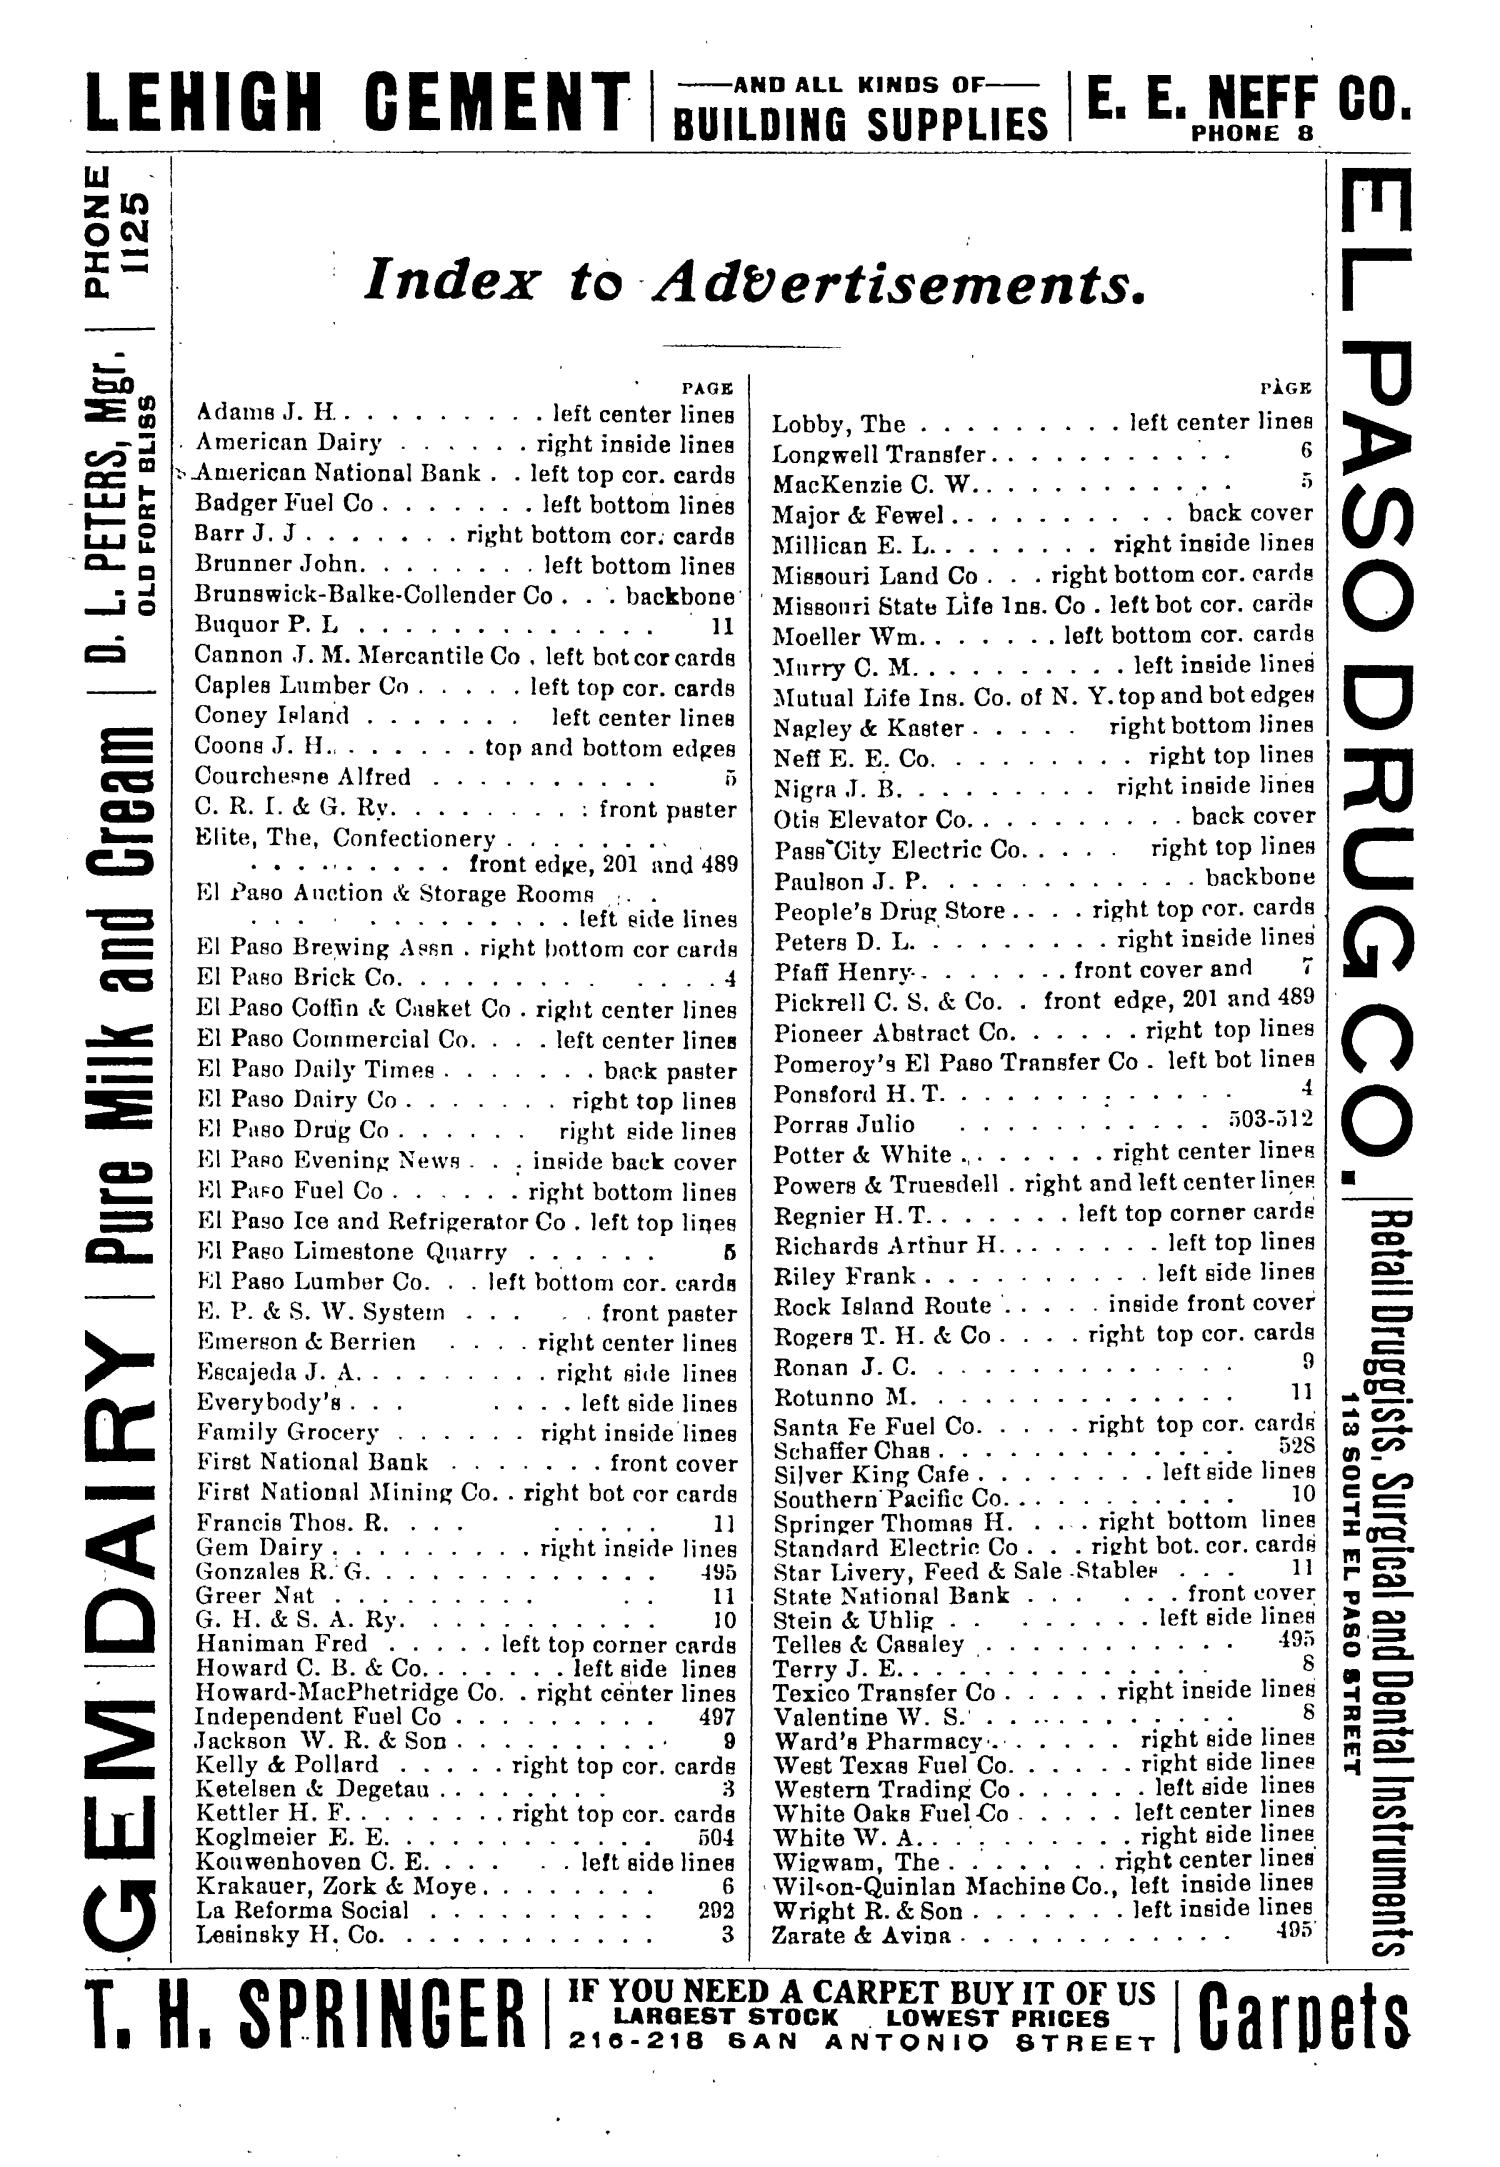 John F. Worley & Co.'s El Paso Directory for 1906                                                                                                      3